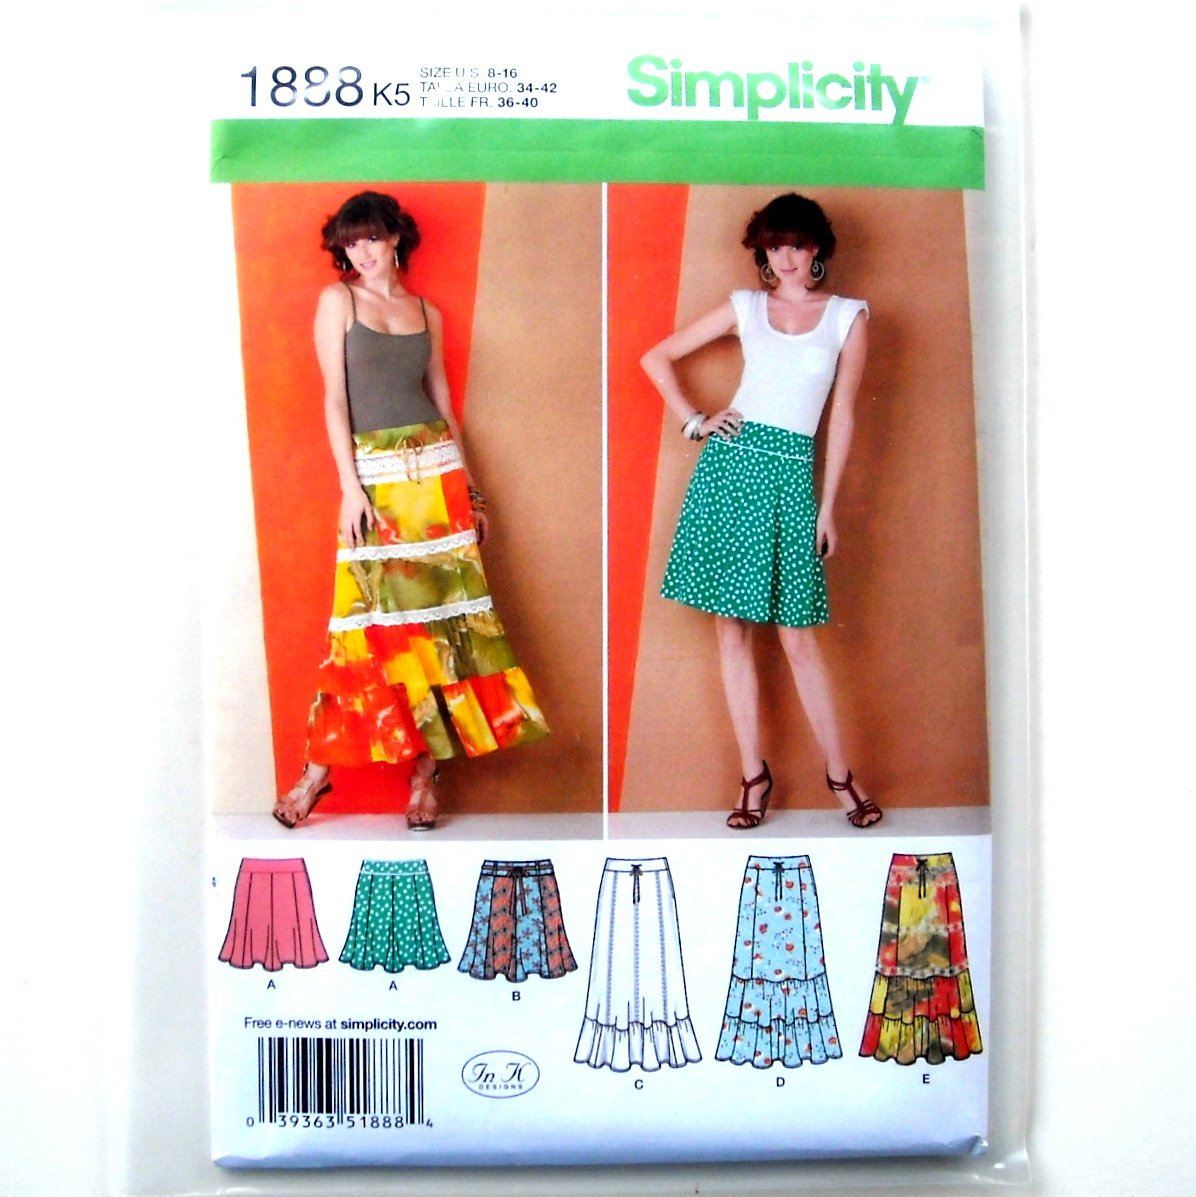 Misses Womens Gored Ruffled Skirts 8 - 16 In K Designs Simplicity Pattern 1888